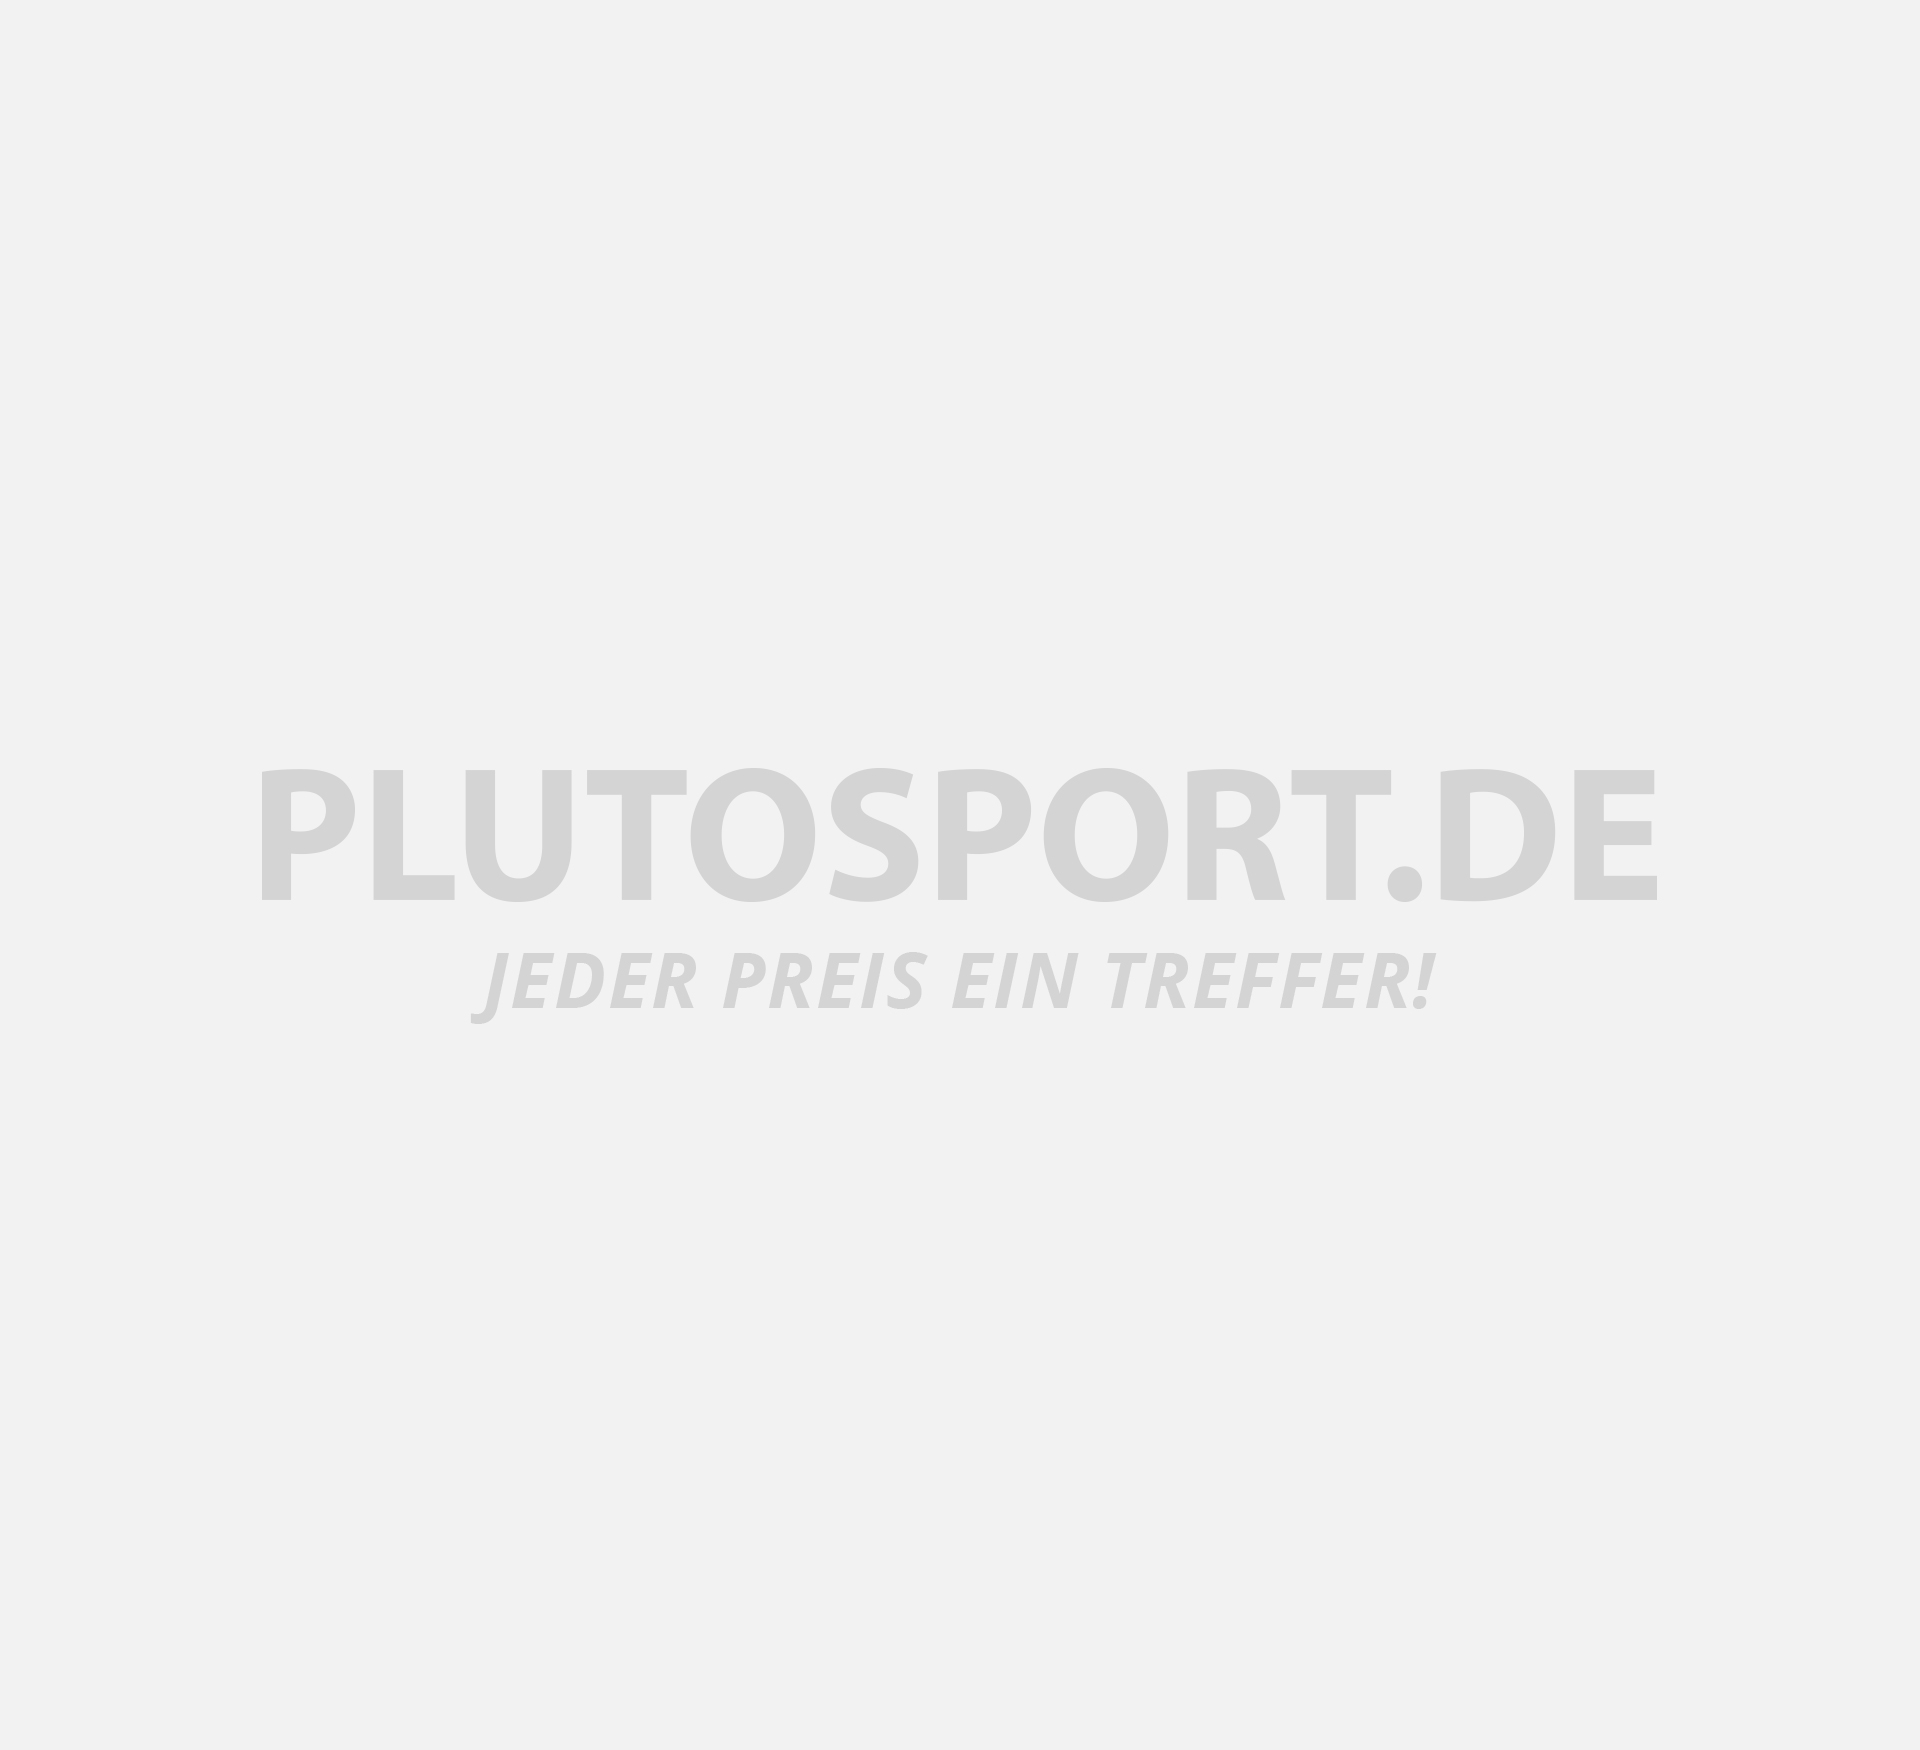 competitive price meet delicate colors Nike Sportswear Jogginghose Kinder